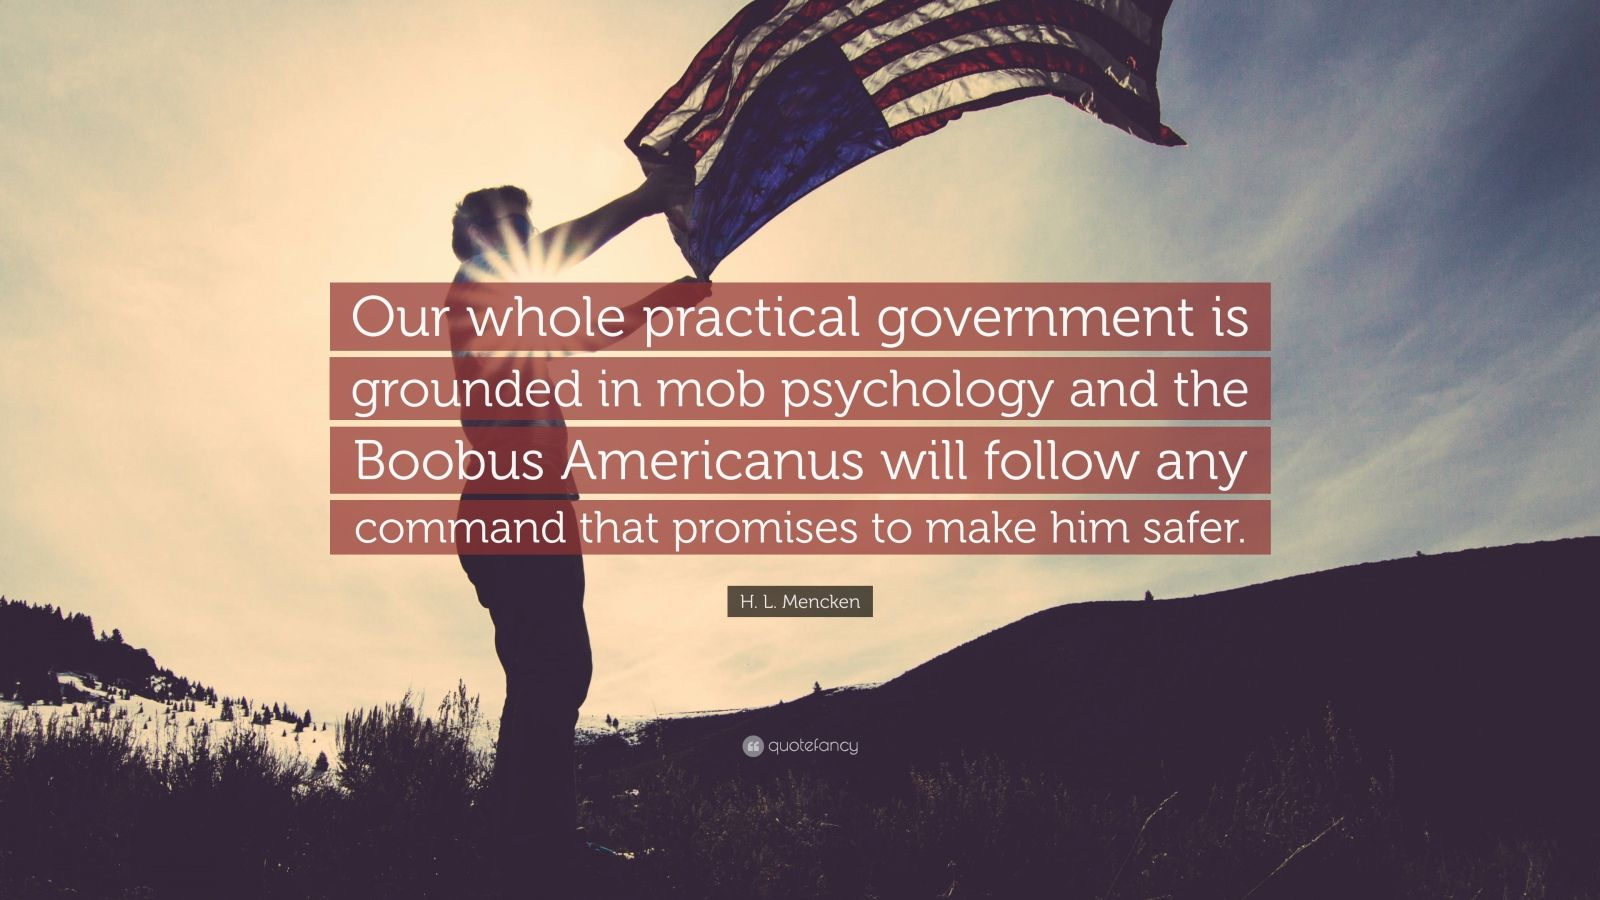 """H. L. Mencken Quote: """"Our whole practical government is grounded in mob psychology and the Boobus Americanus will follow any command that promises to make him safer."""""""